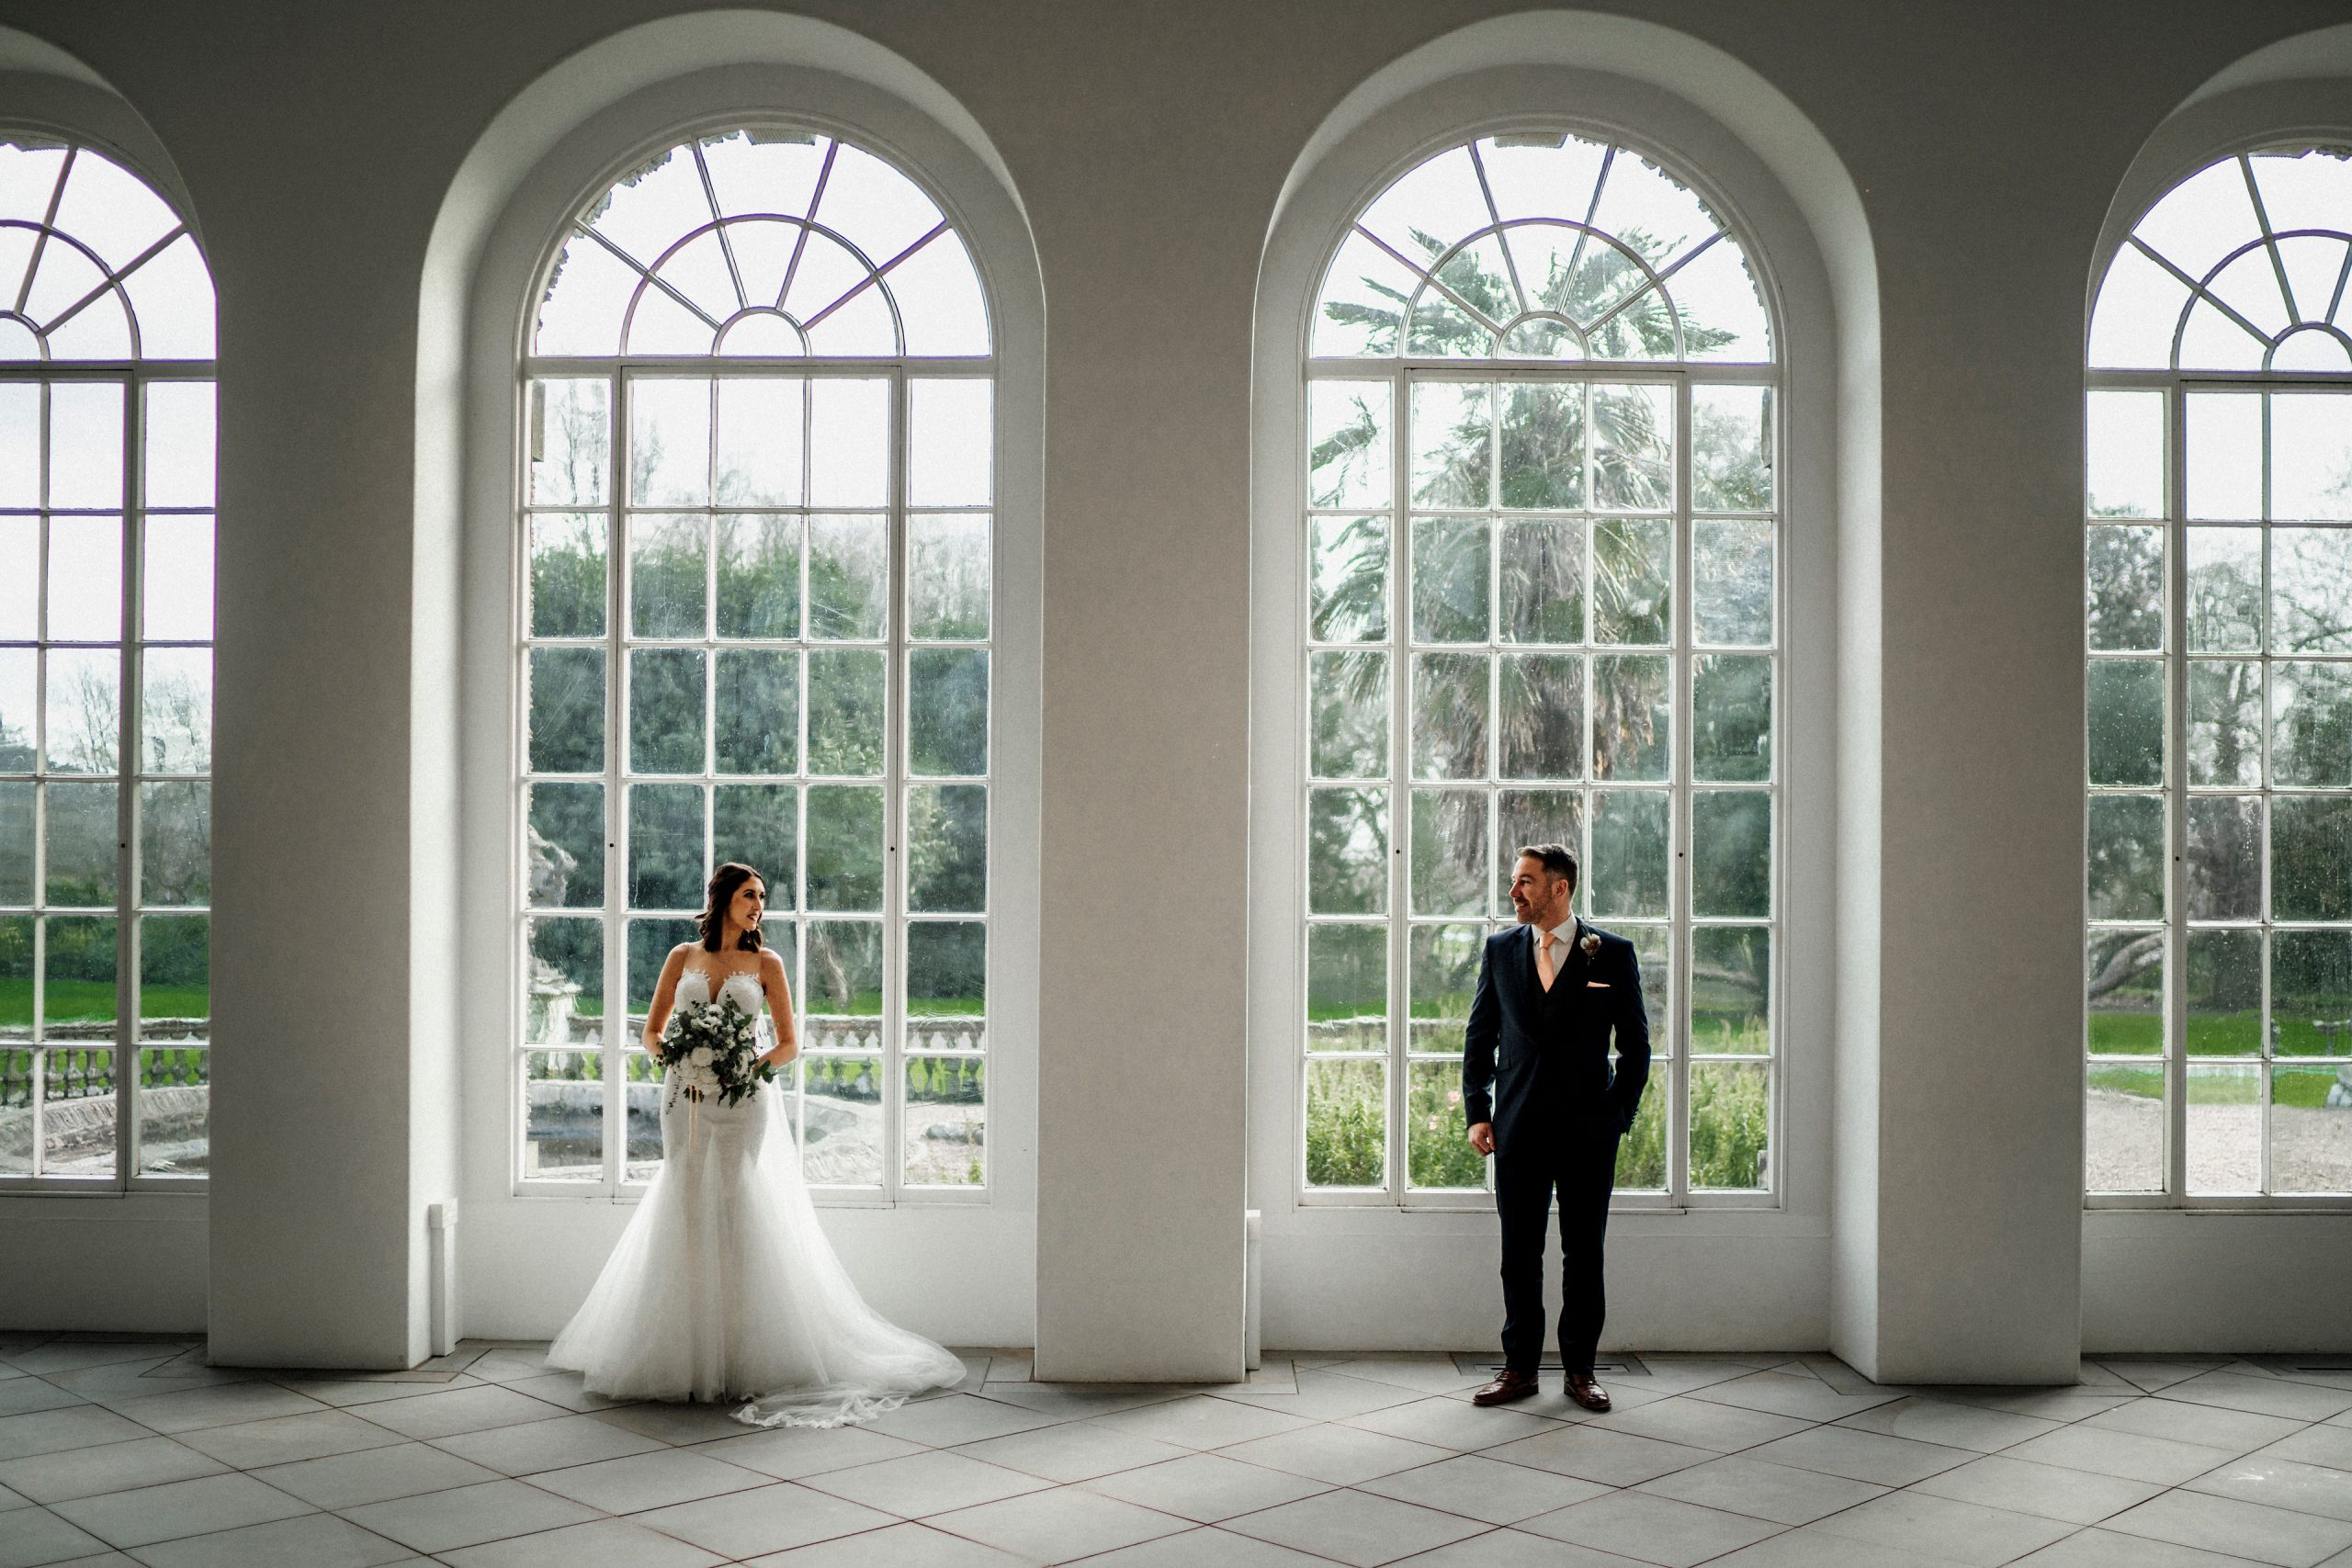 Bride and groom stand in front of the grand windows